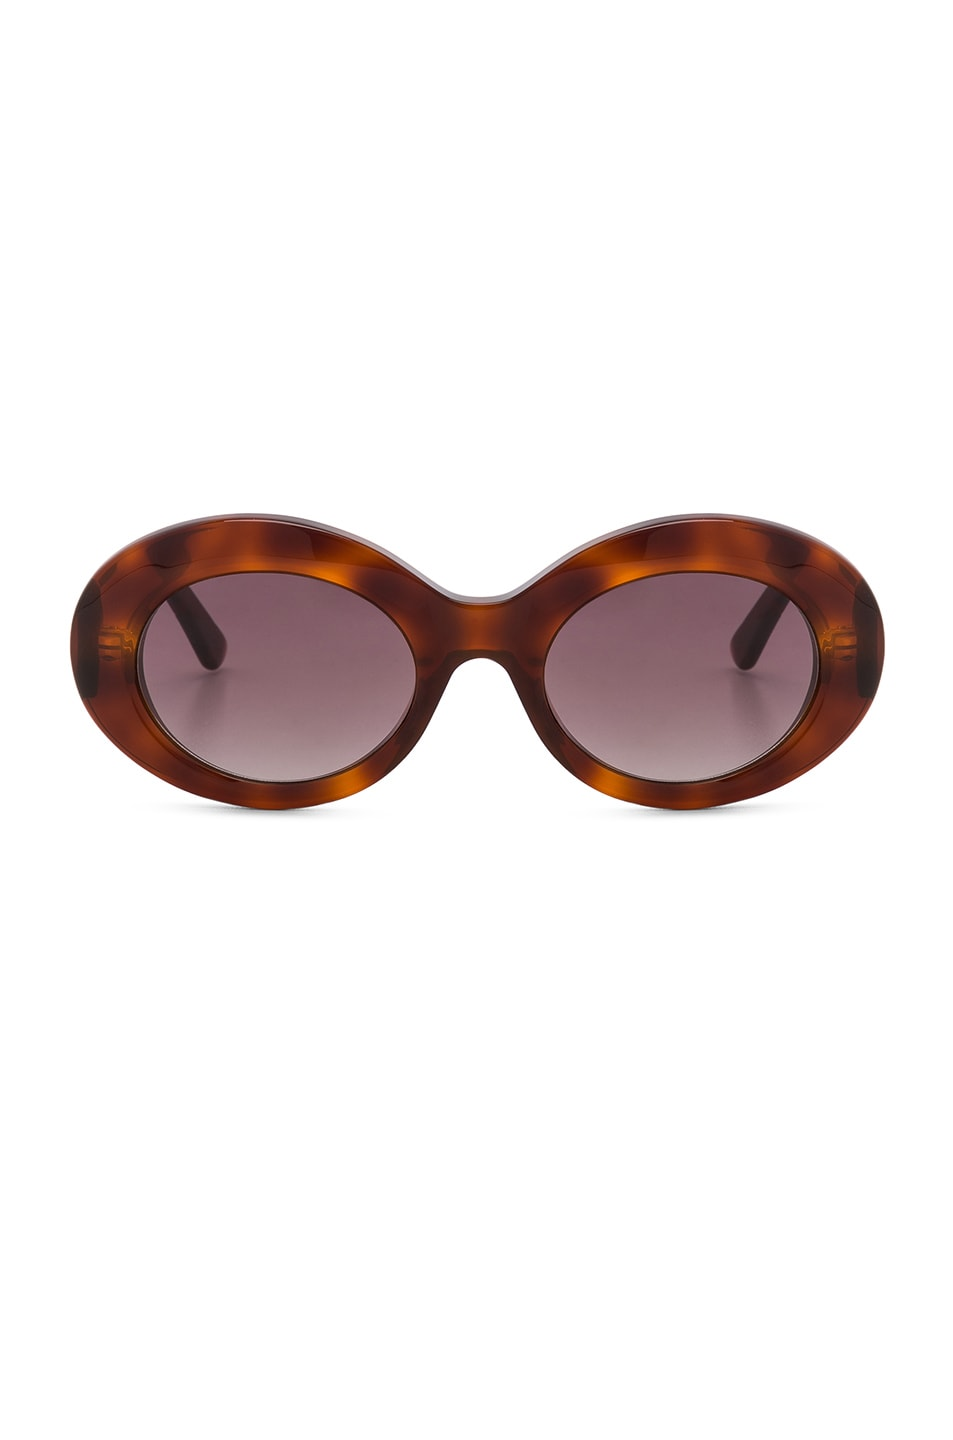 Image 1 of Balenciaga Oval Sunglasses in Blonde Havana & Burgundy